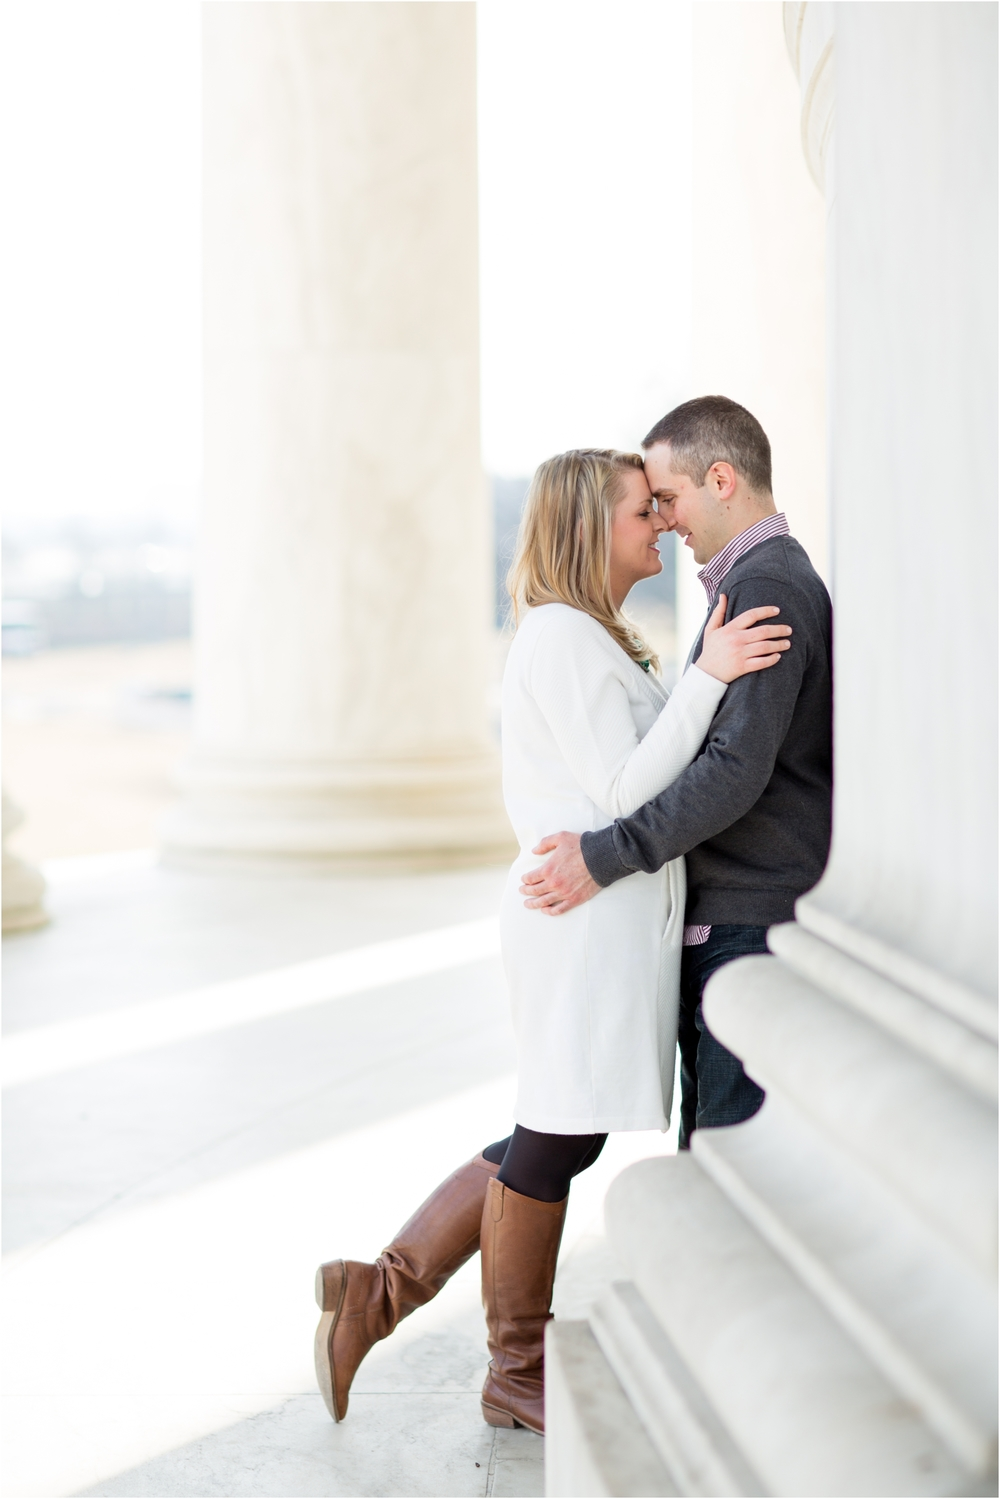 Mary & Nick Engaged-171.jpg